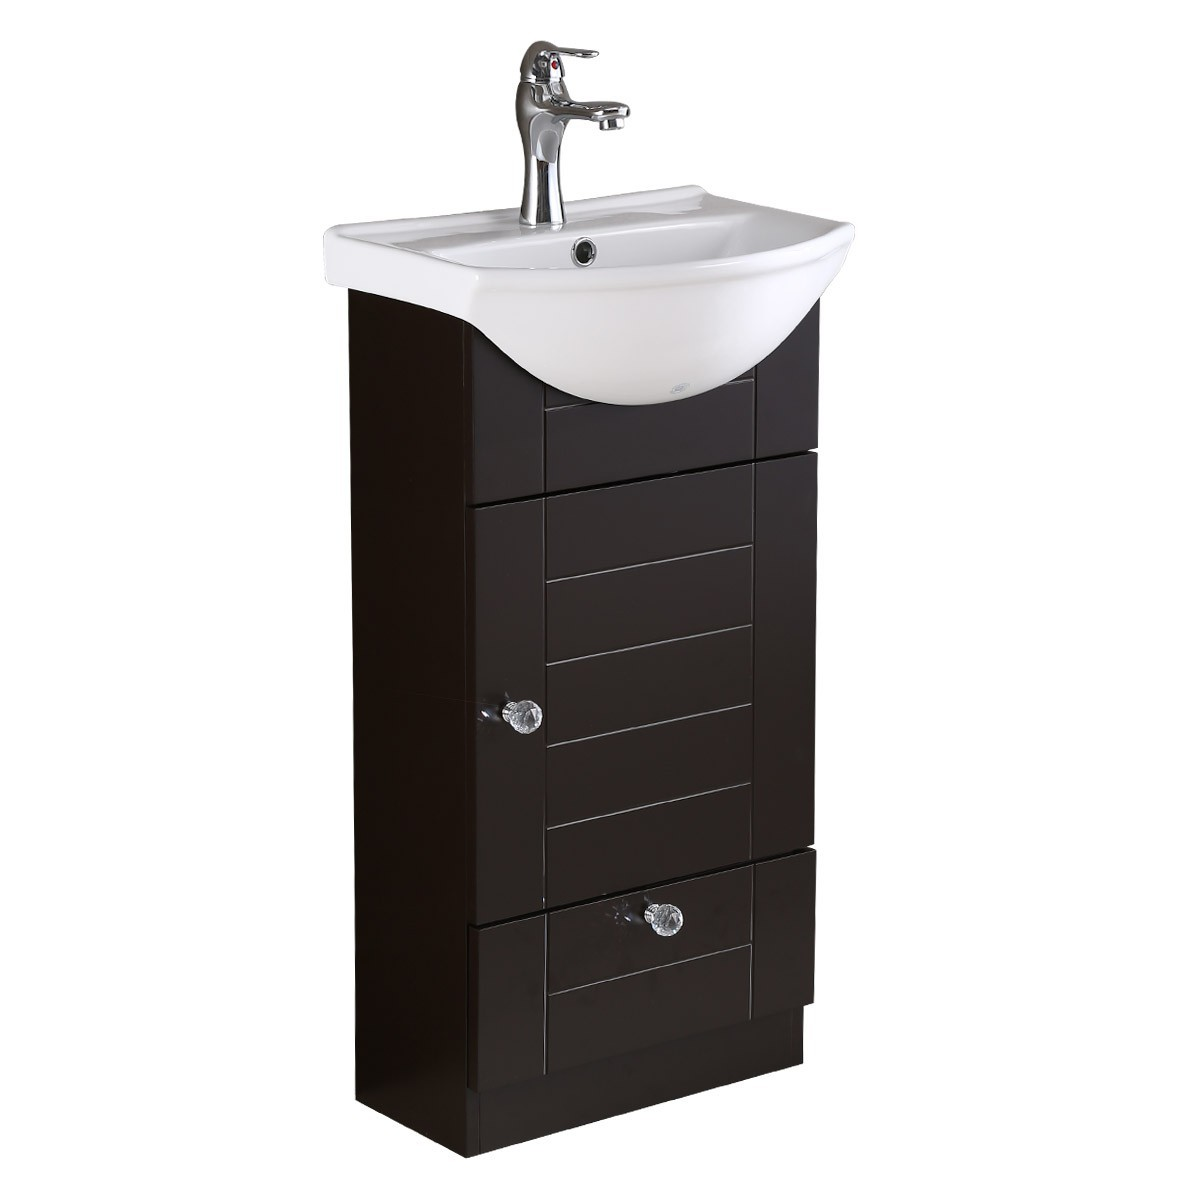 Bathroom Vanity White Sink Black Square Cabinet Wall Mount